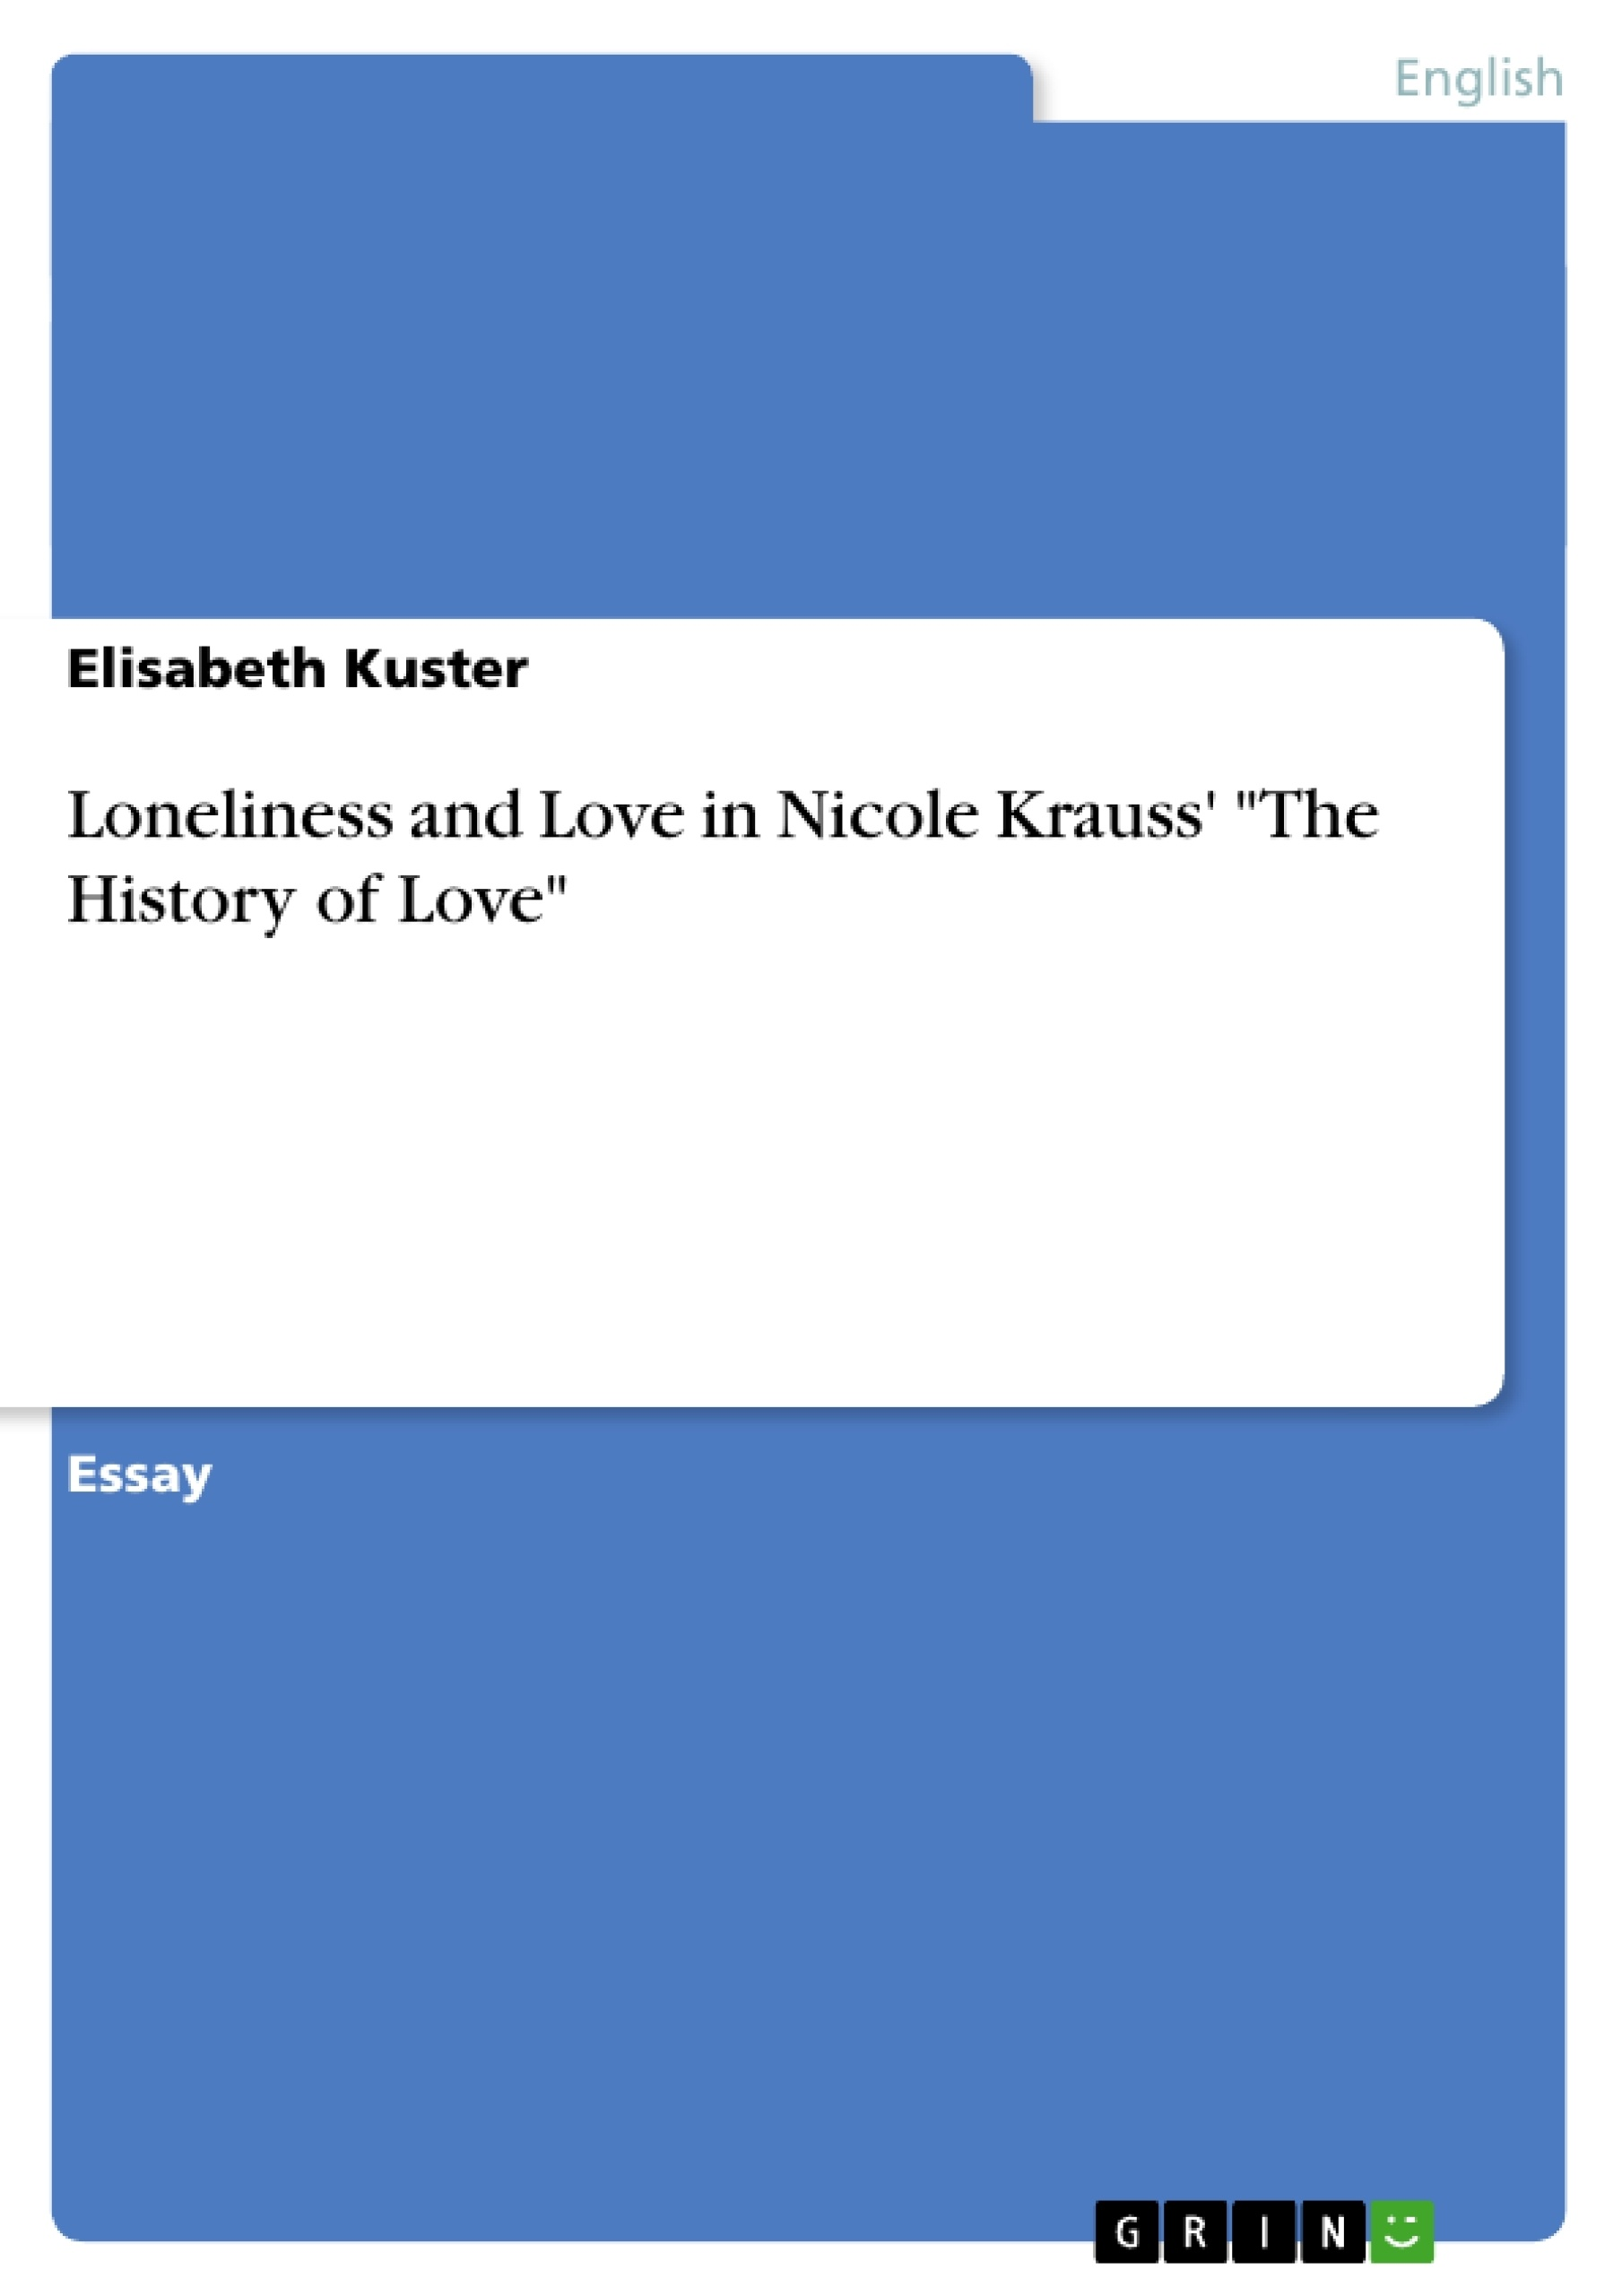 loneliness and love in nicole krauss the history of love upload your own papers earn money and win an iphone 7